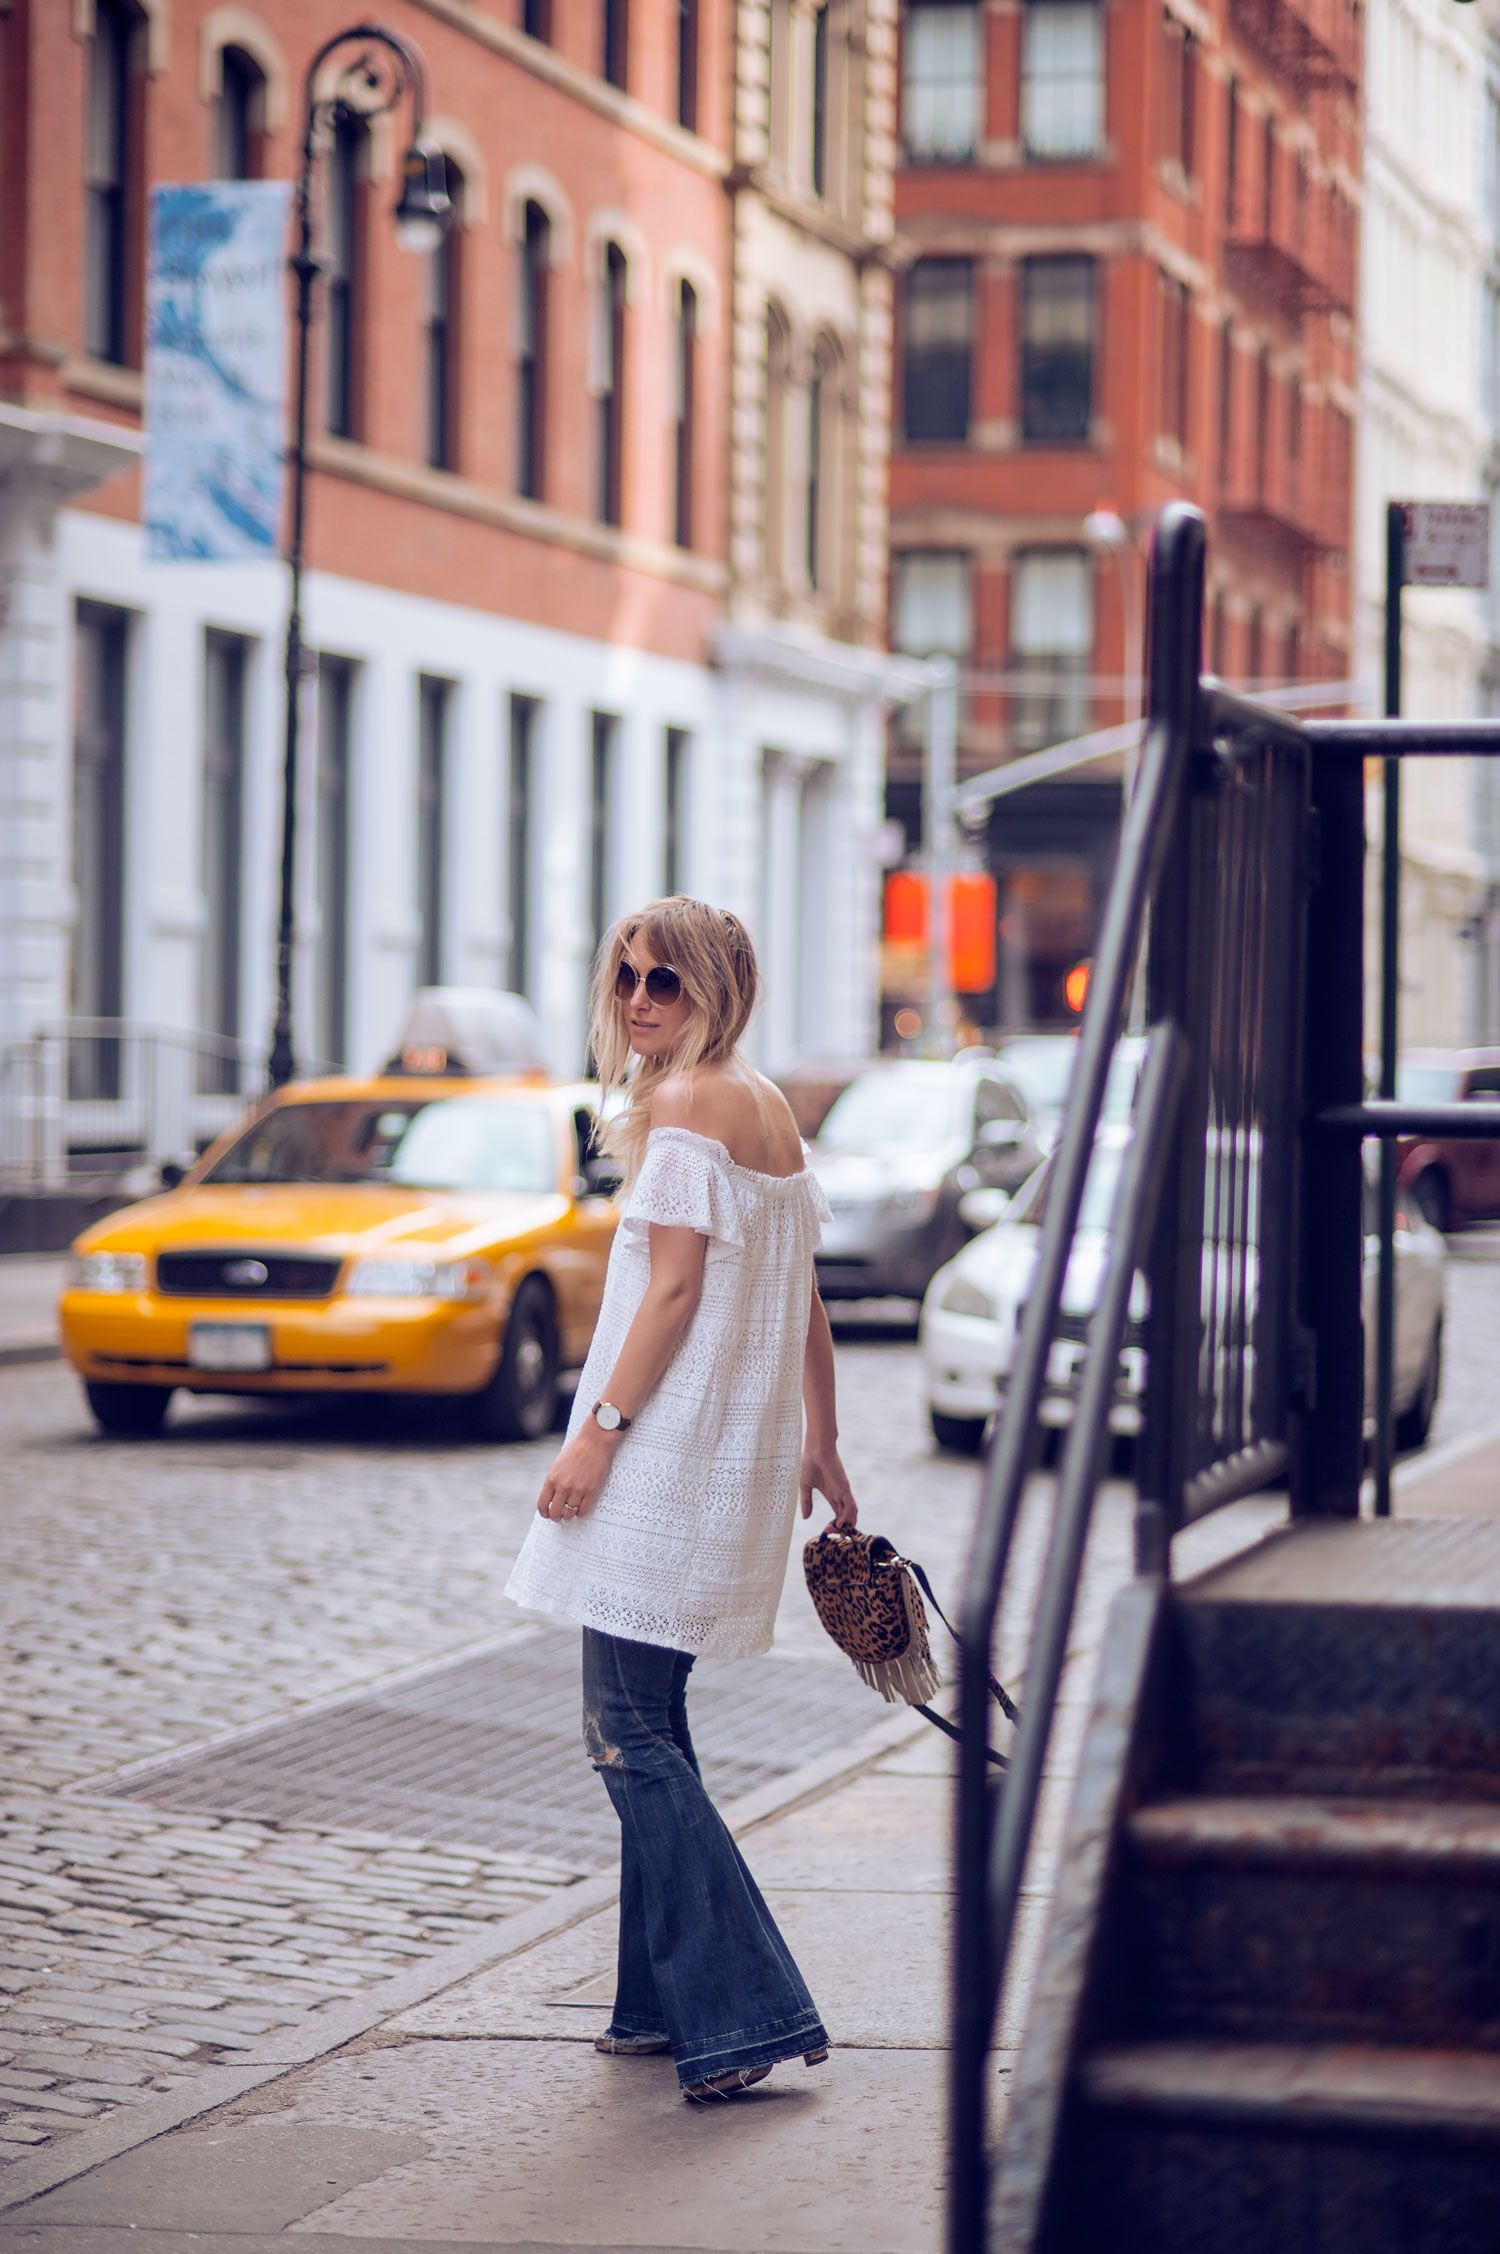 http://raspberry-rouge.com/wp-content/uploads/2015/05/70s-style-fashion-blogger-2.jpg